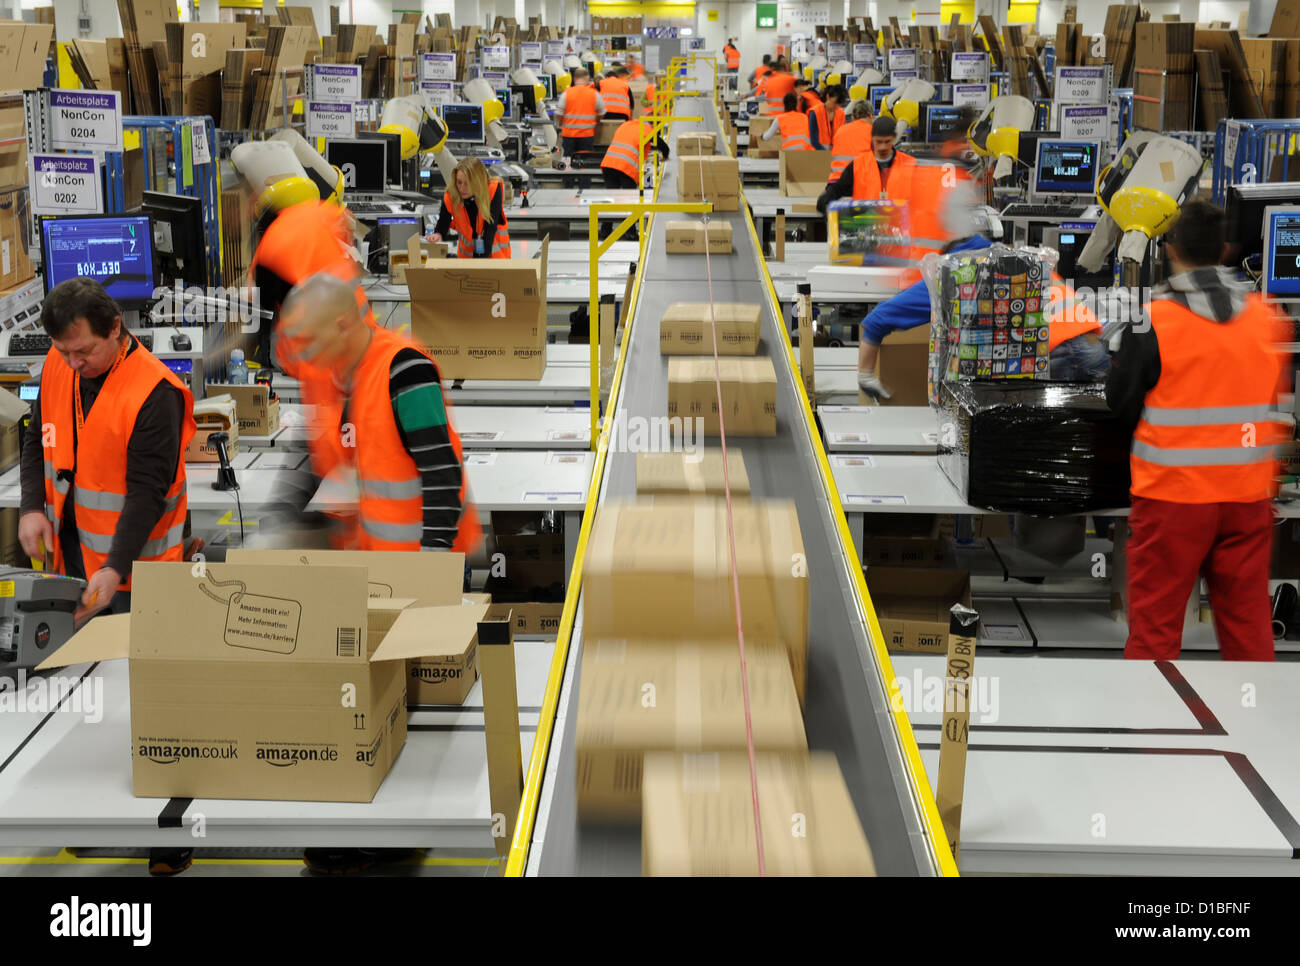 People work in the shipping department in the Amazon